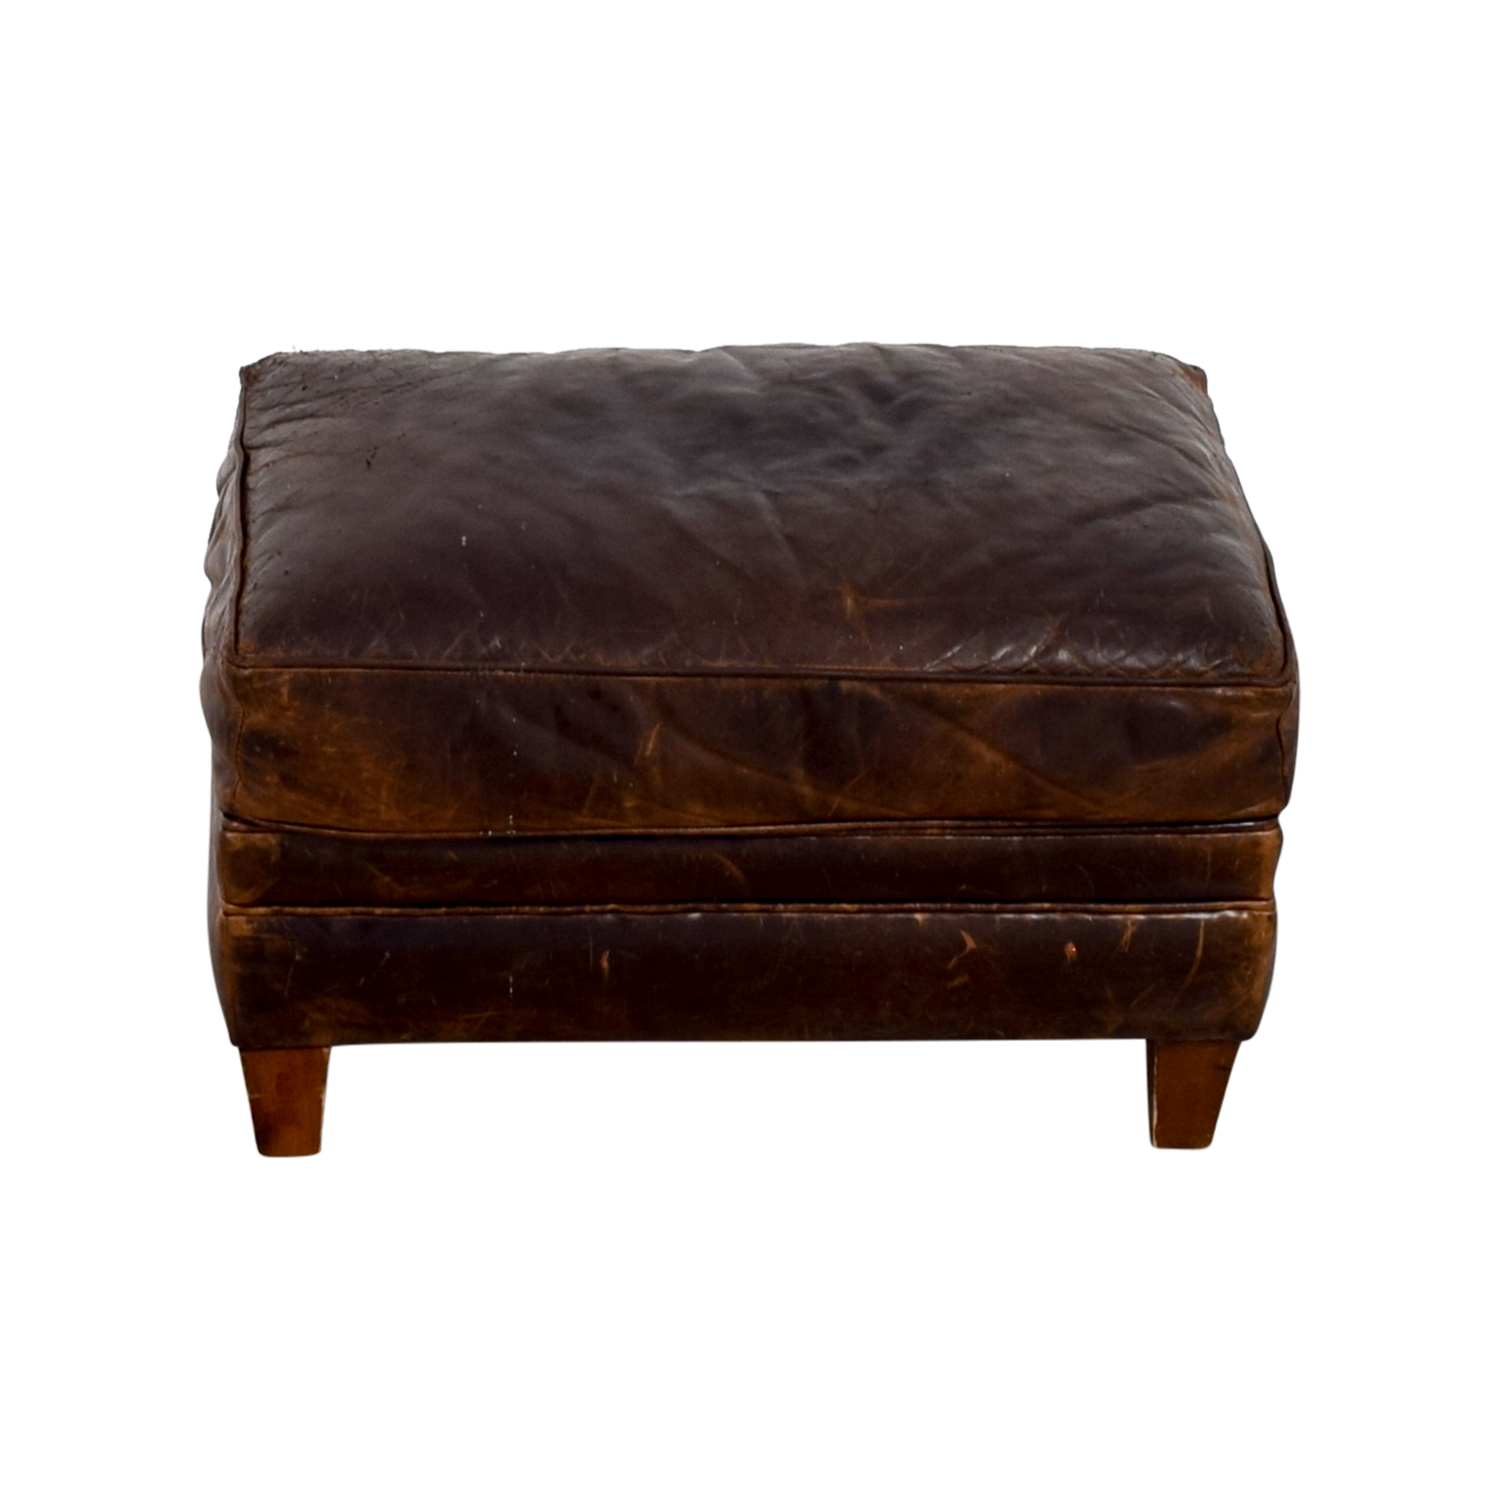 Restoration Hardware Restoration Hardware Brown Leather Ottoman coupon